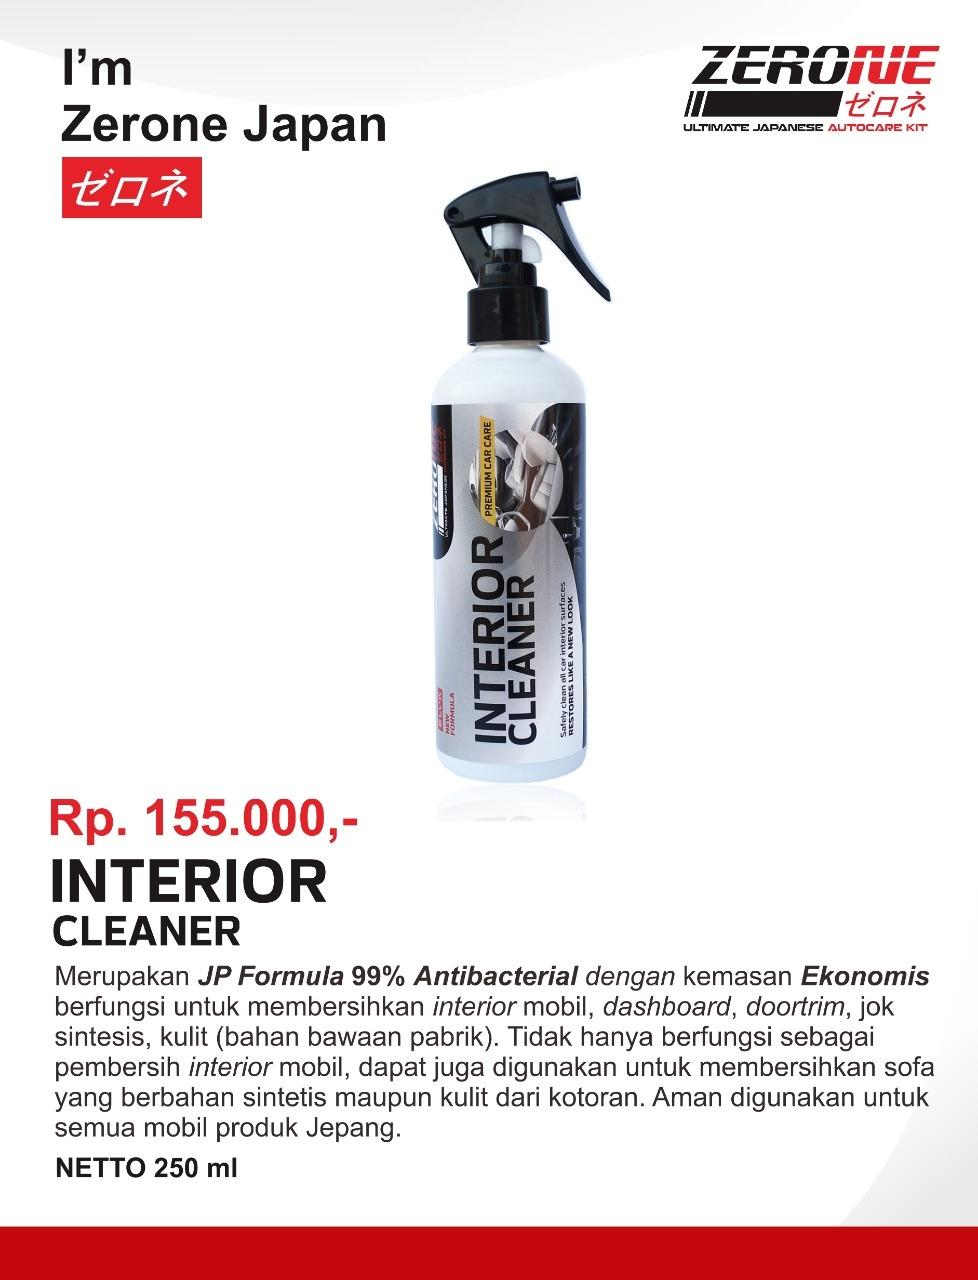 Zerone Interior Cleaner - Pembersih Interior Mobil By Zerone Japan Official.